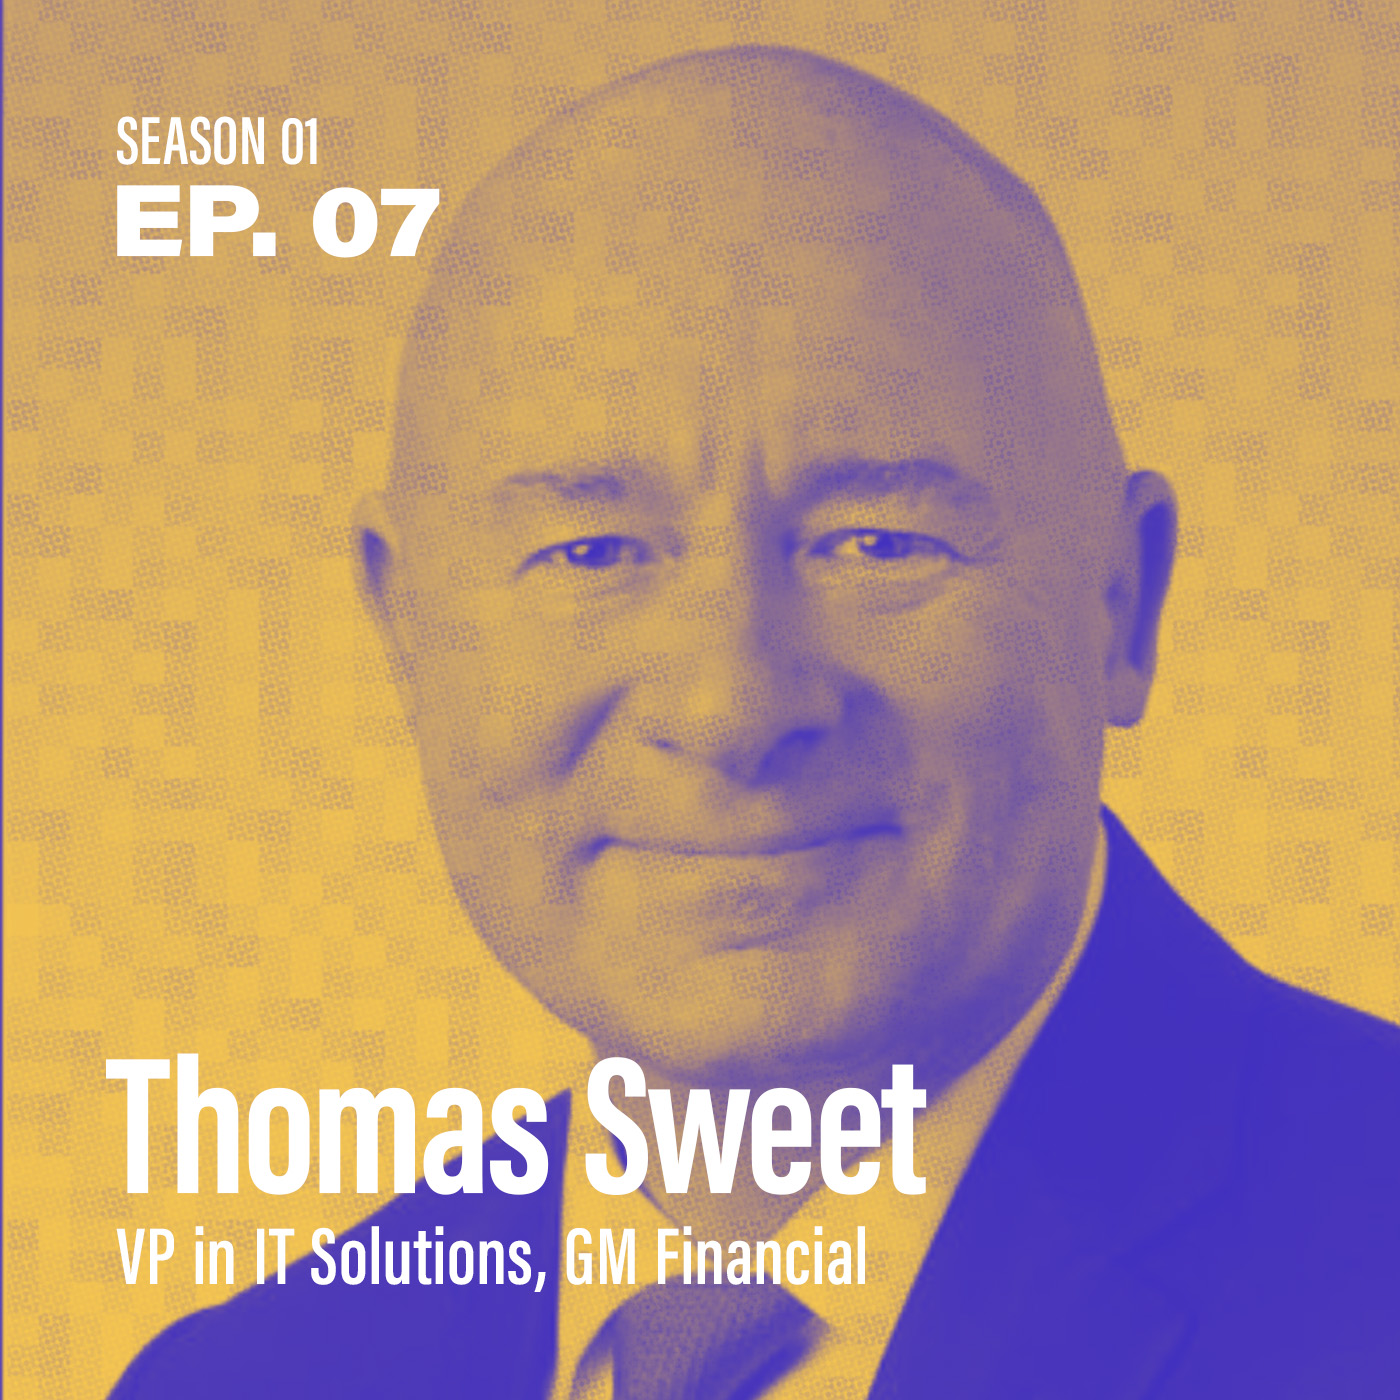 """Season 1, Episode 7: """"How do I up-skill my team for digital transformation?"""" with Thomas Sweet, VP in IT Solutions @ GM Financial"""